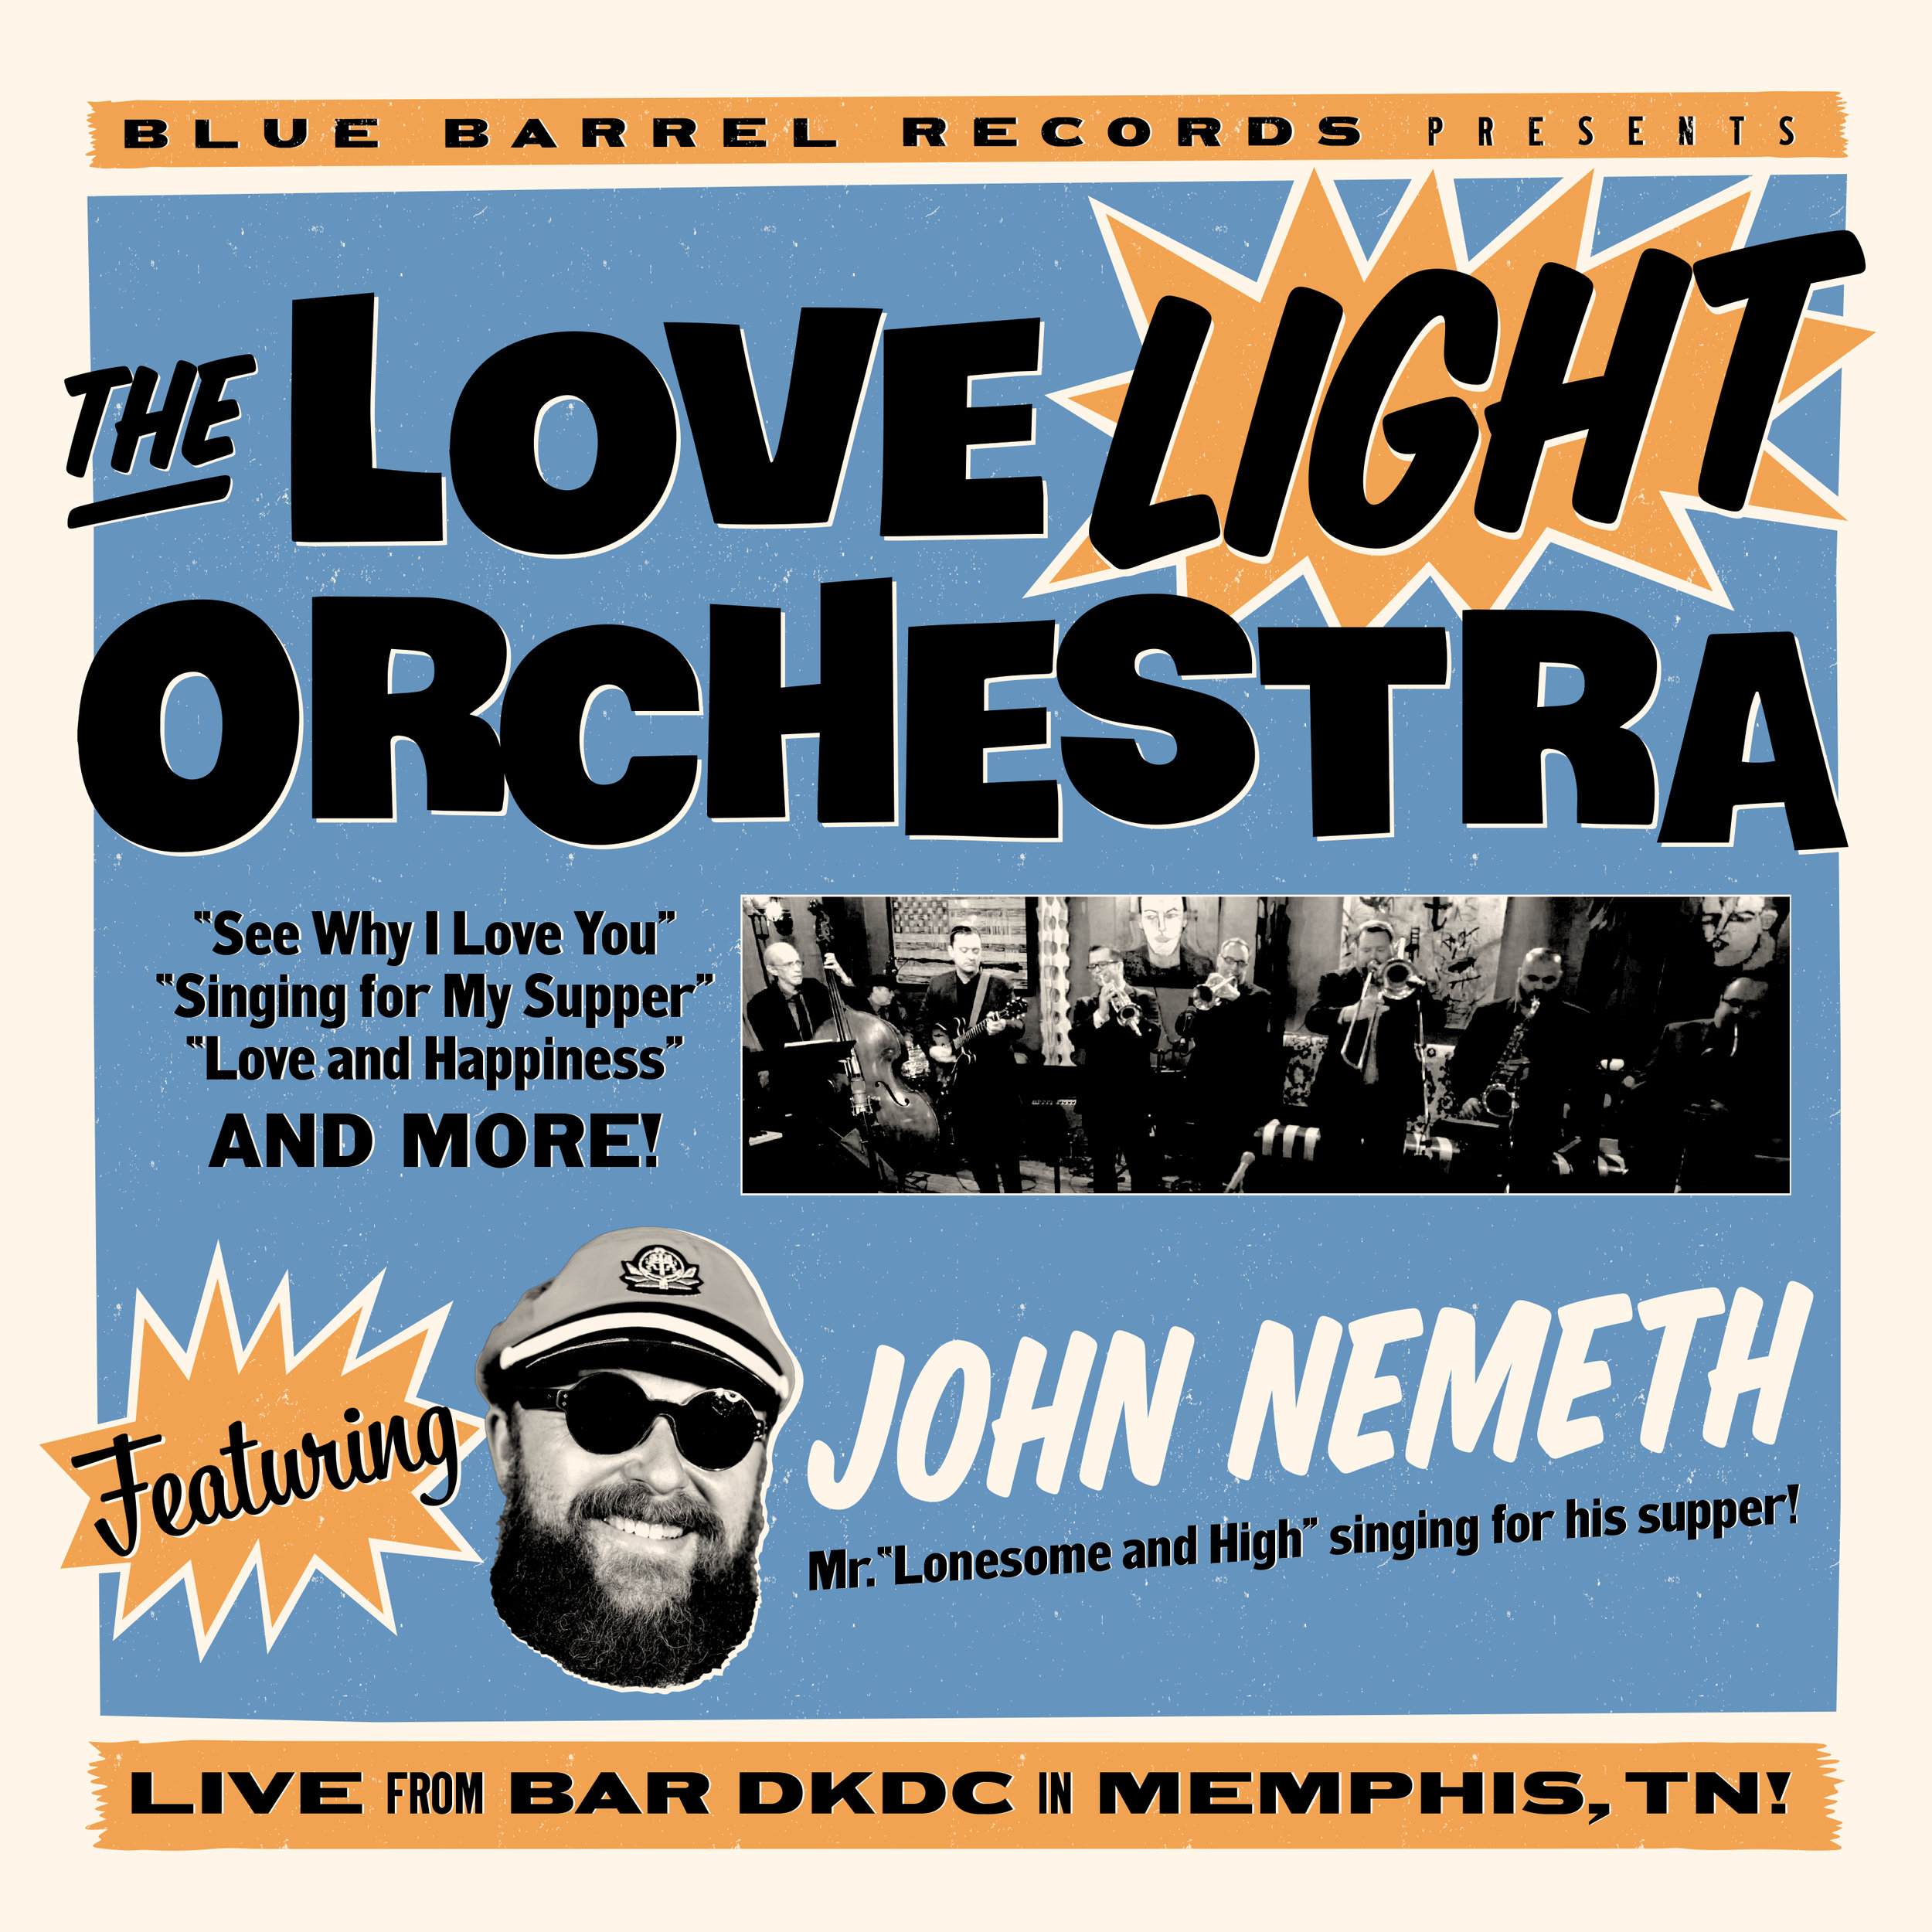 love-light-orchestra-featuring-john-nemeth-3000.jpg